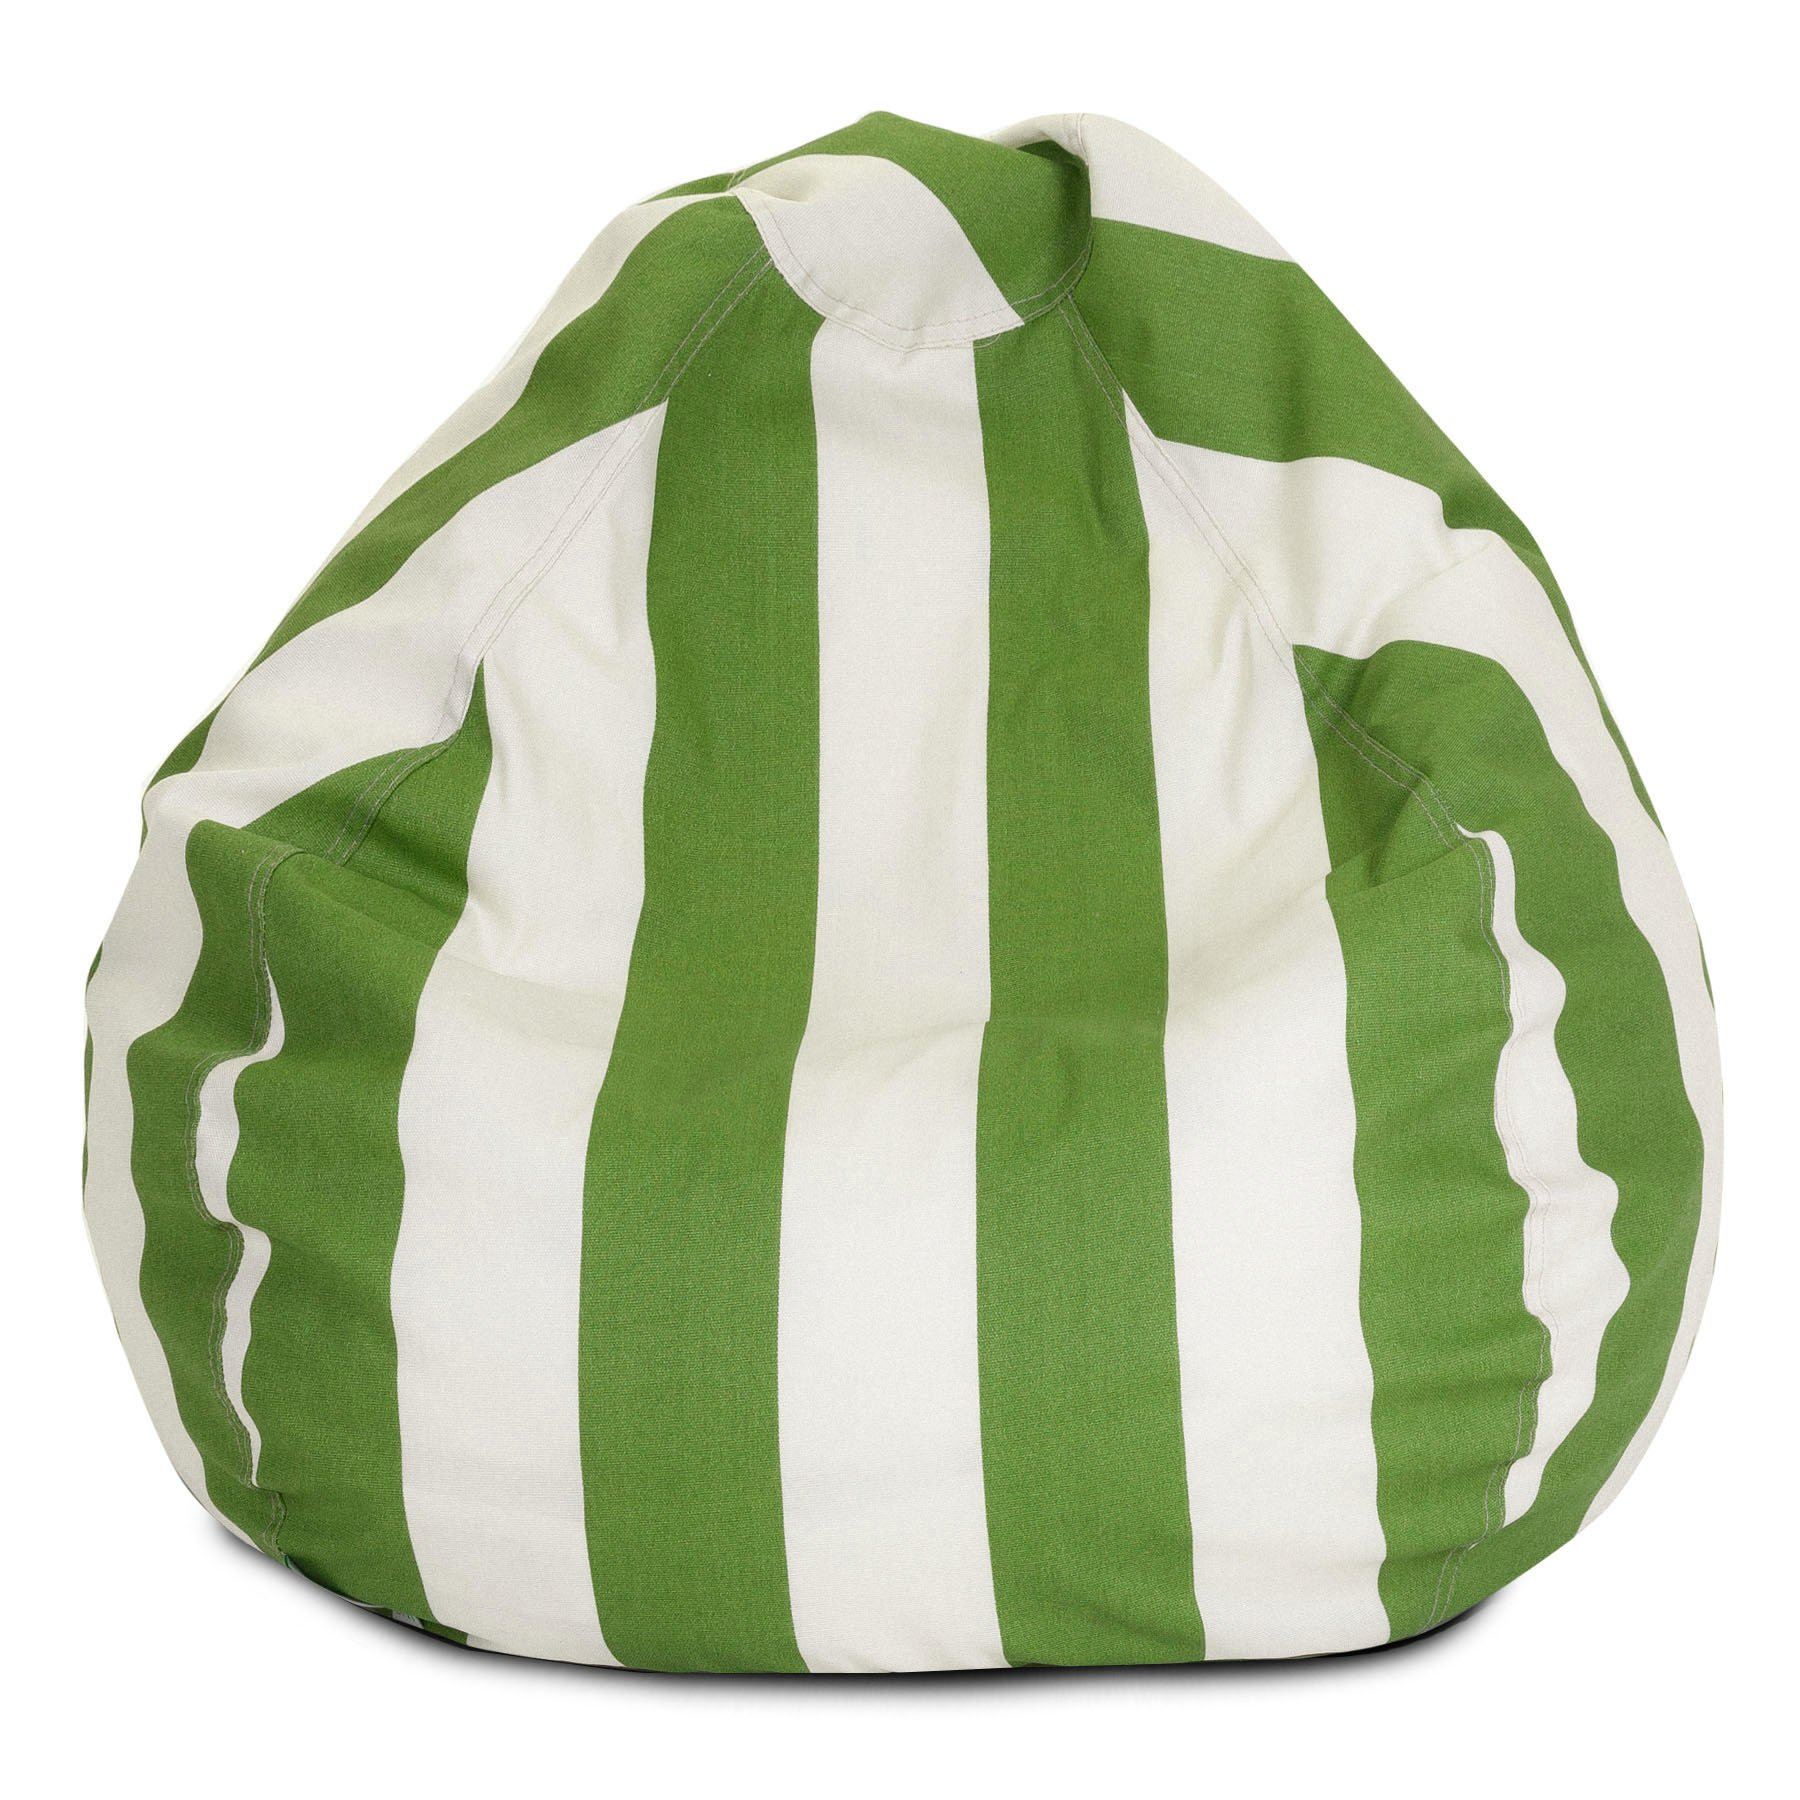 Majestic Home Goods Vertical Stripe Bean Bag, Small, Sage